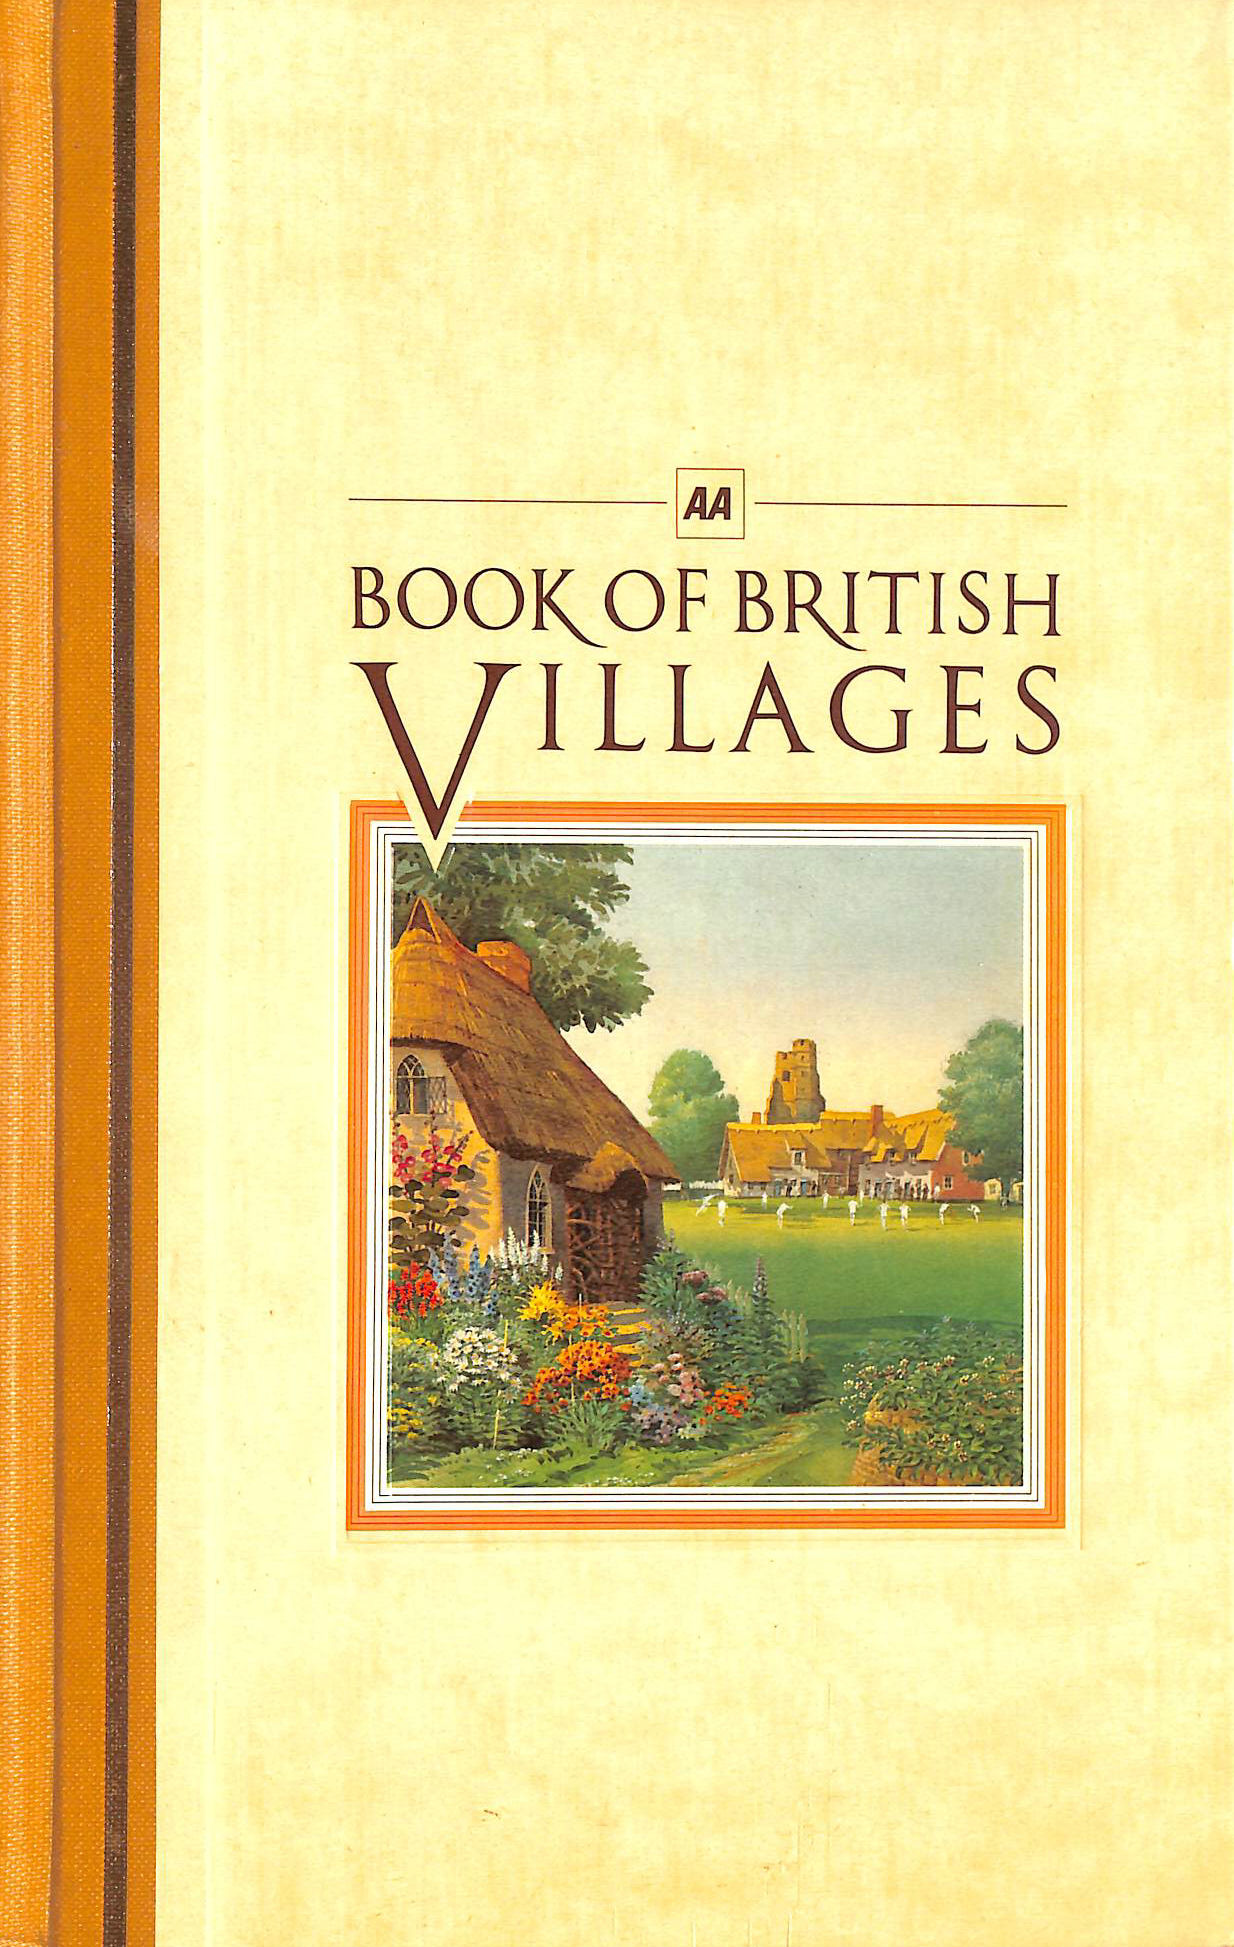 Image for AA BOOK OF BRITISH VILLAGES: A GUIDE TO 700 OF THE MOST INTERESTING AND ATTRACTIVE VILLAGES IN BRITAIN.